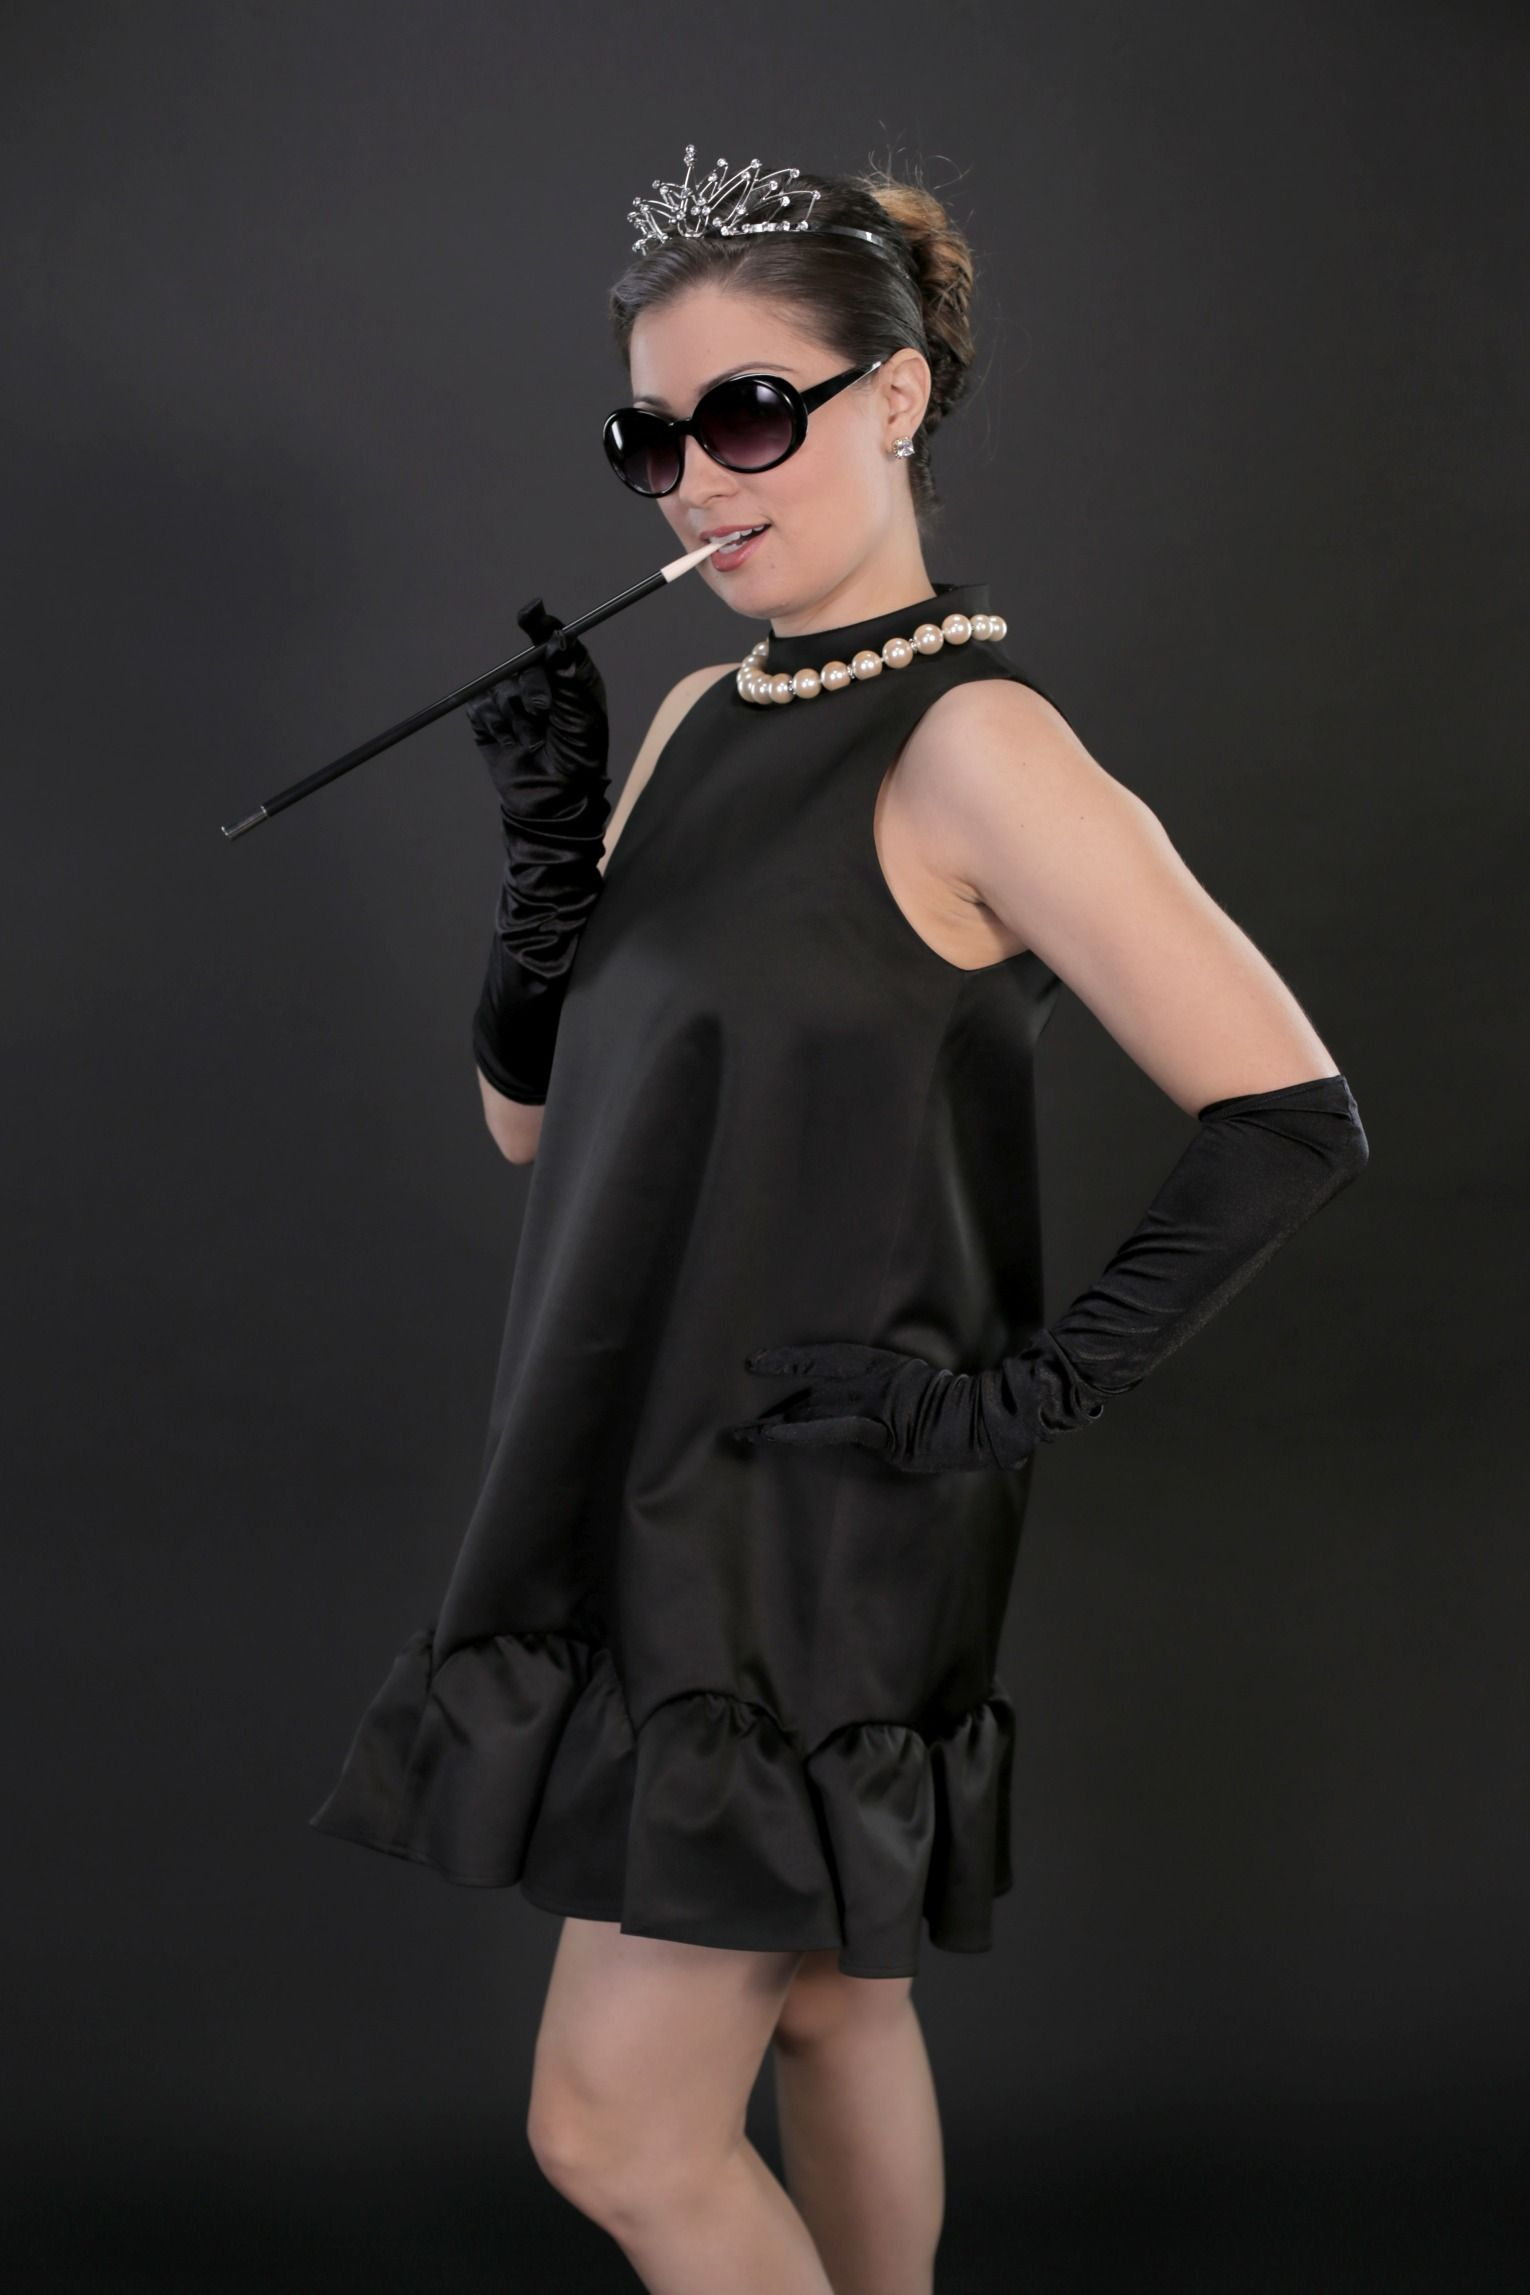 If a black dress is a staple in your wardrobe, then you barely have to lift a finger this Halloween. You can wear a black dress in SO many ways even on a regular day, but this year you can DIY the perfect costume without spending any money — or even leaving your house!